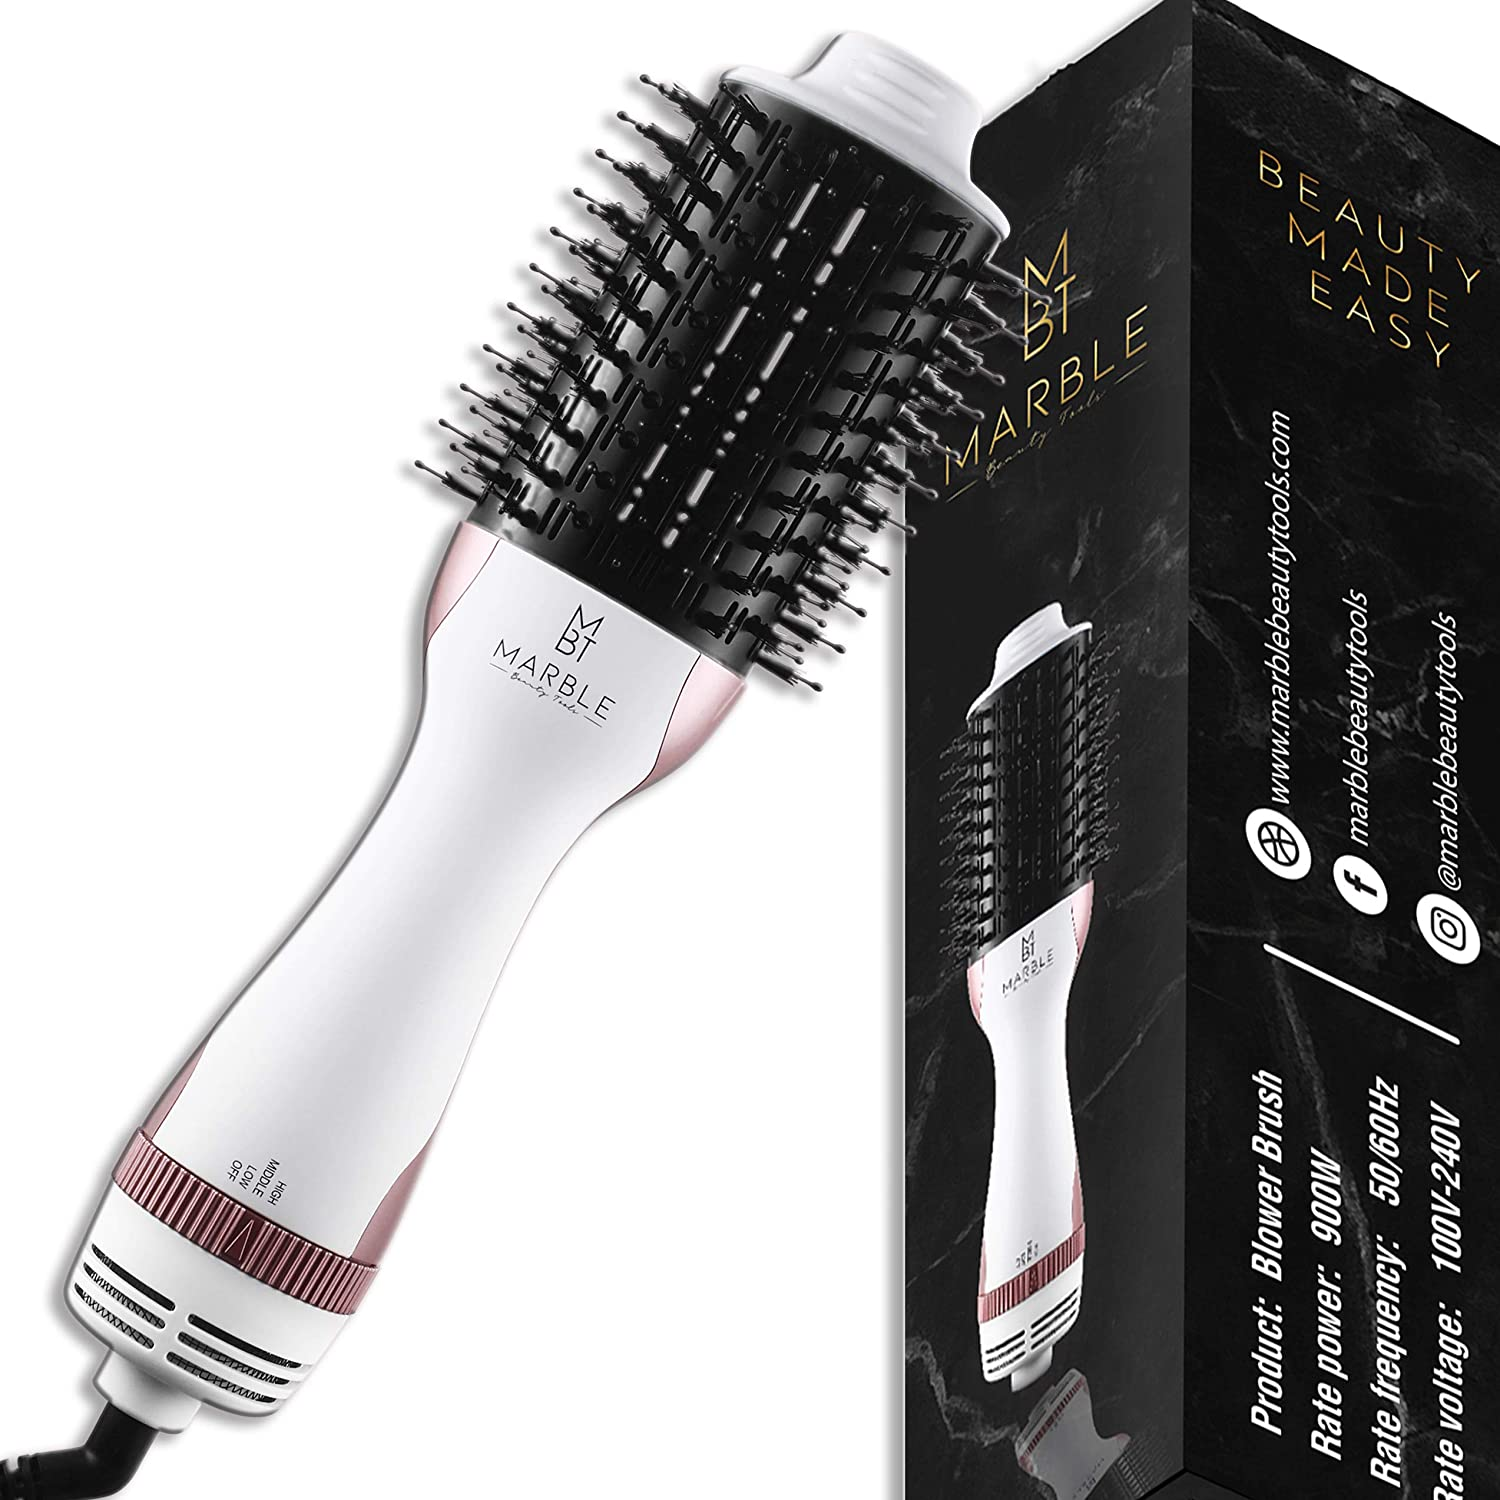 Marble Beauty Tools One Step Hair Dryer Brush, Fast 3 in 1 Hot Air Blower Brush, Straightening Round Brush, Volumizer/Glow Styler Beauty Tool, White Rose Gold Curling Salon Electric Blowout Comb